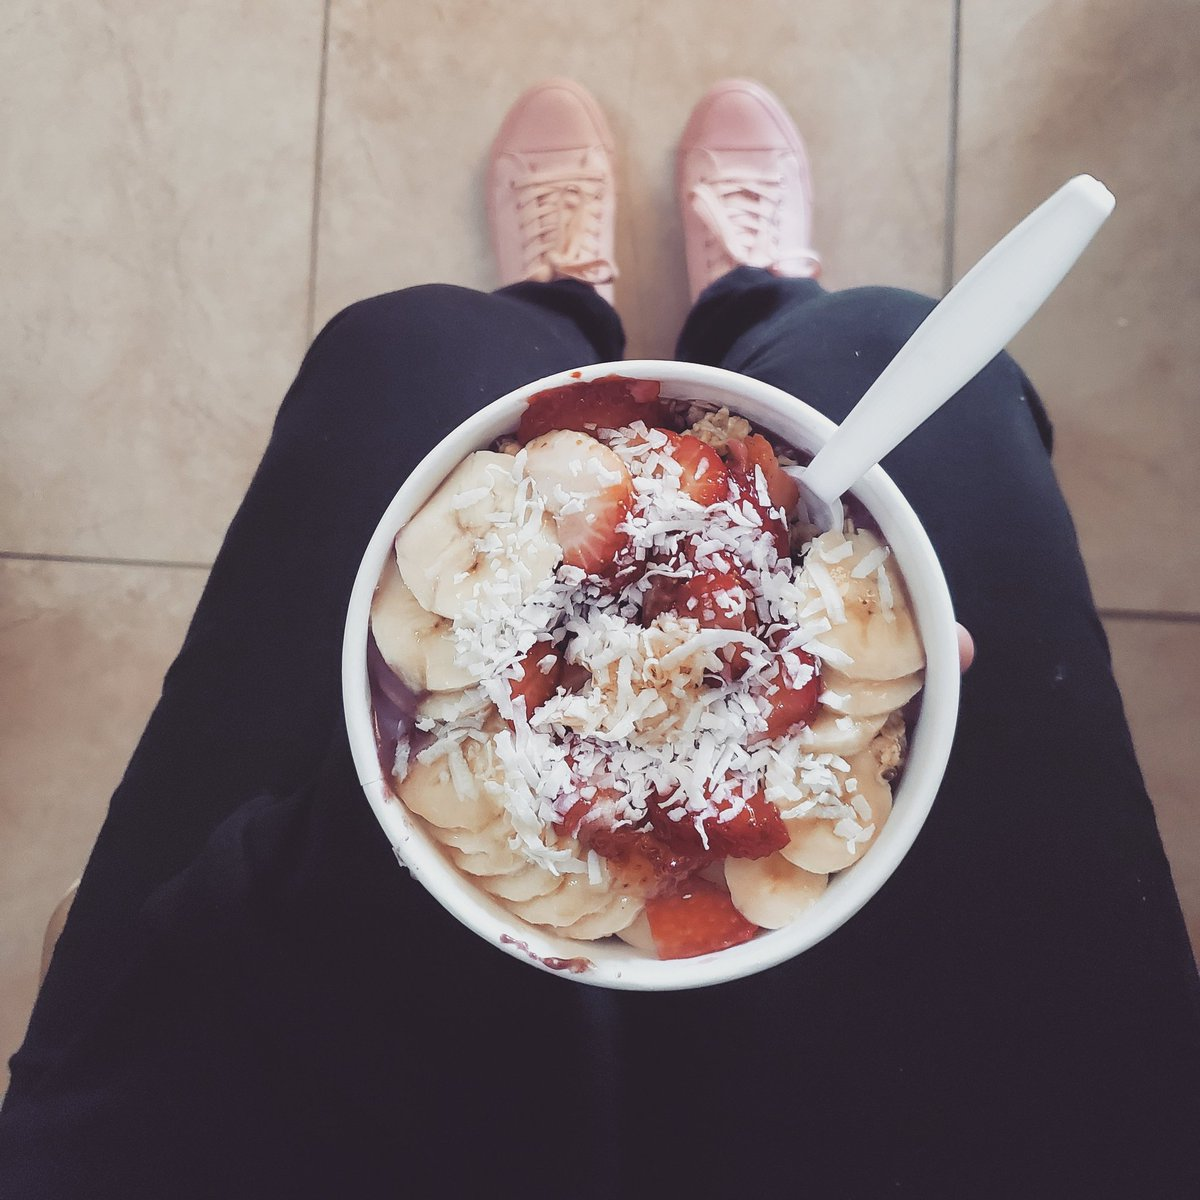 《 Me Monday 》Acai smoothie bowl to jump start the week ♡ from Vitality Bowls #healthy #eatclean #fit #fitness #smoothiebowlpic.twitter.com/Lvsgq60015